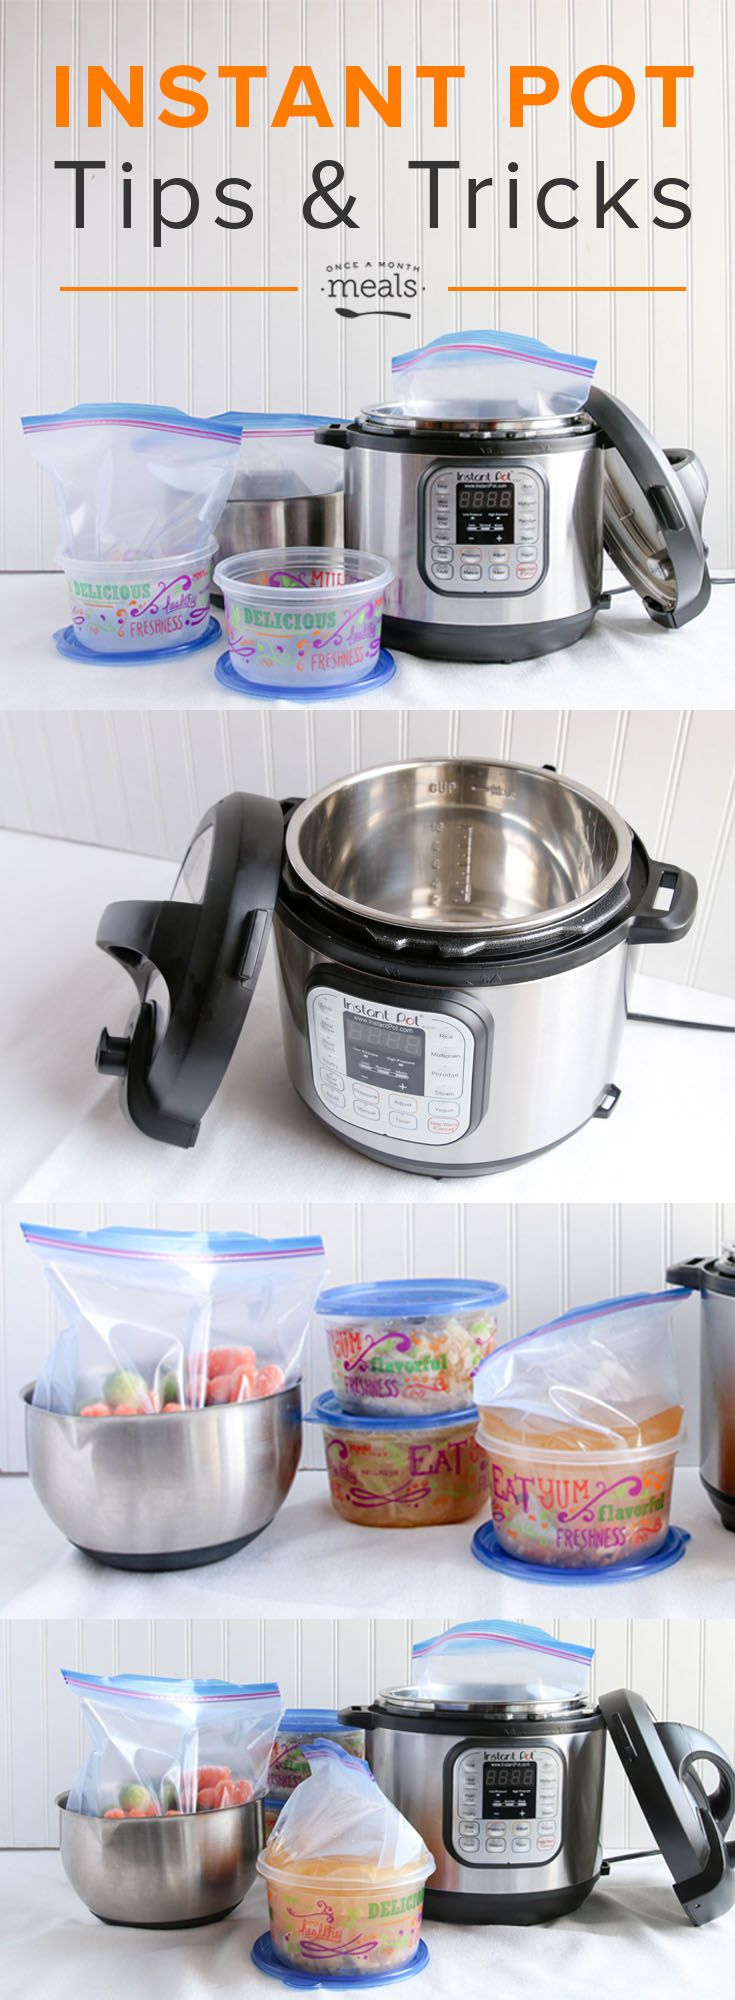 how to cook letils in instant pot